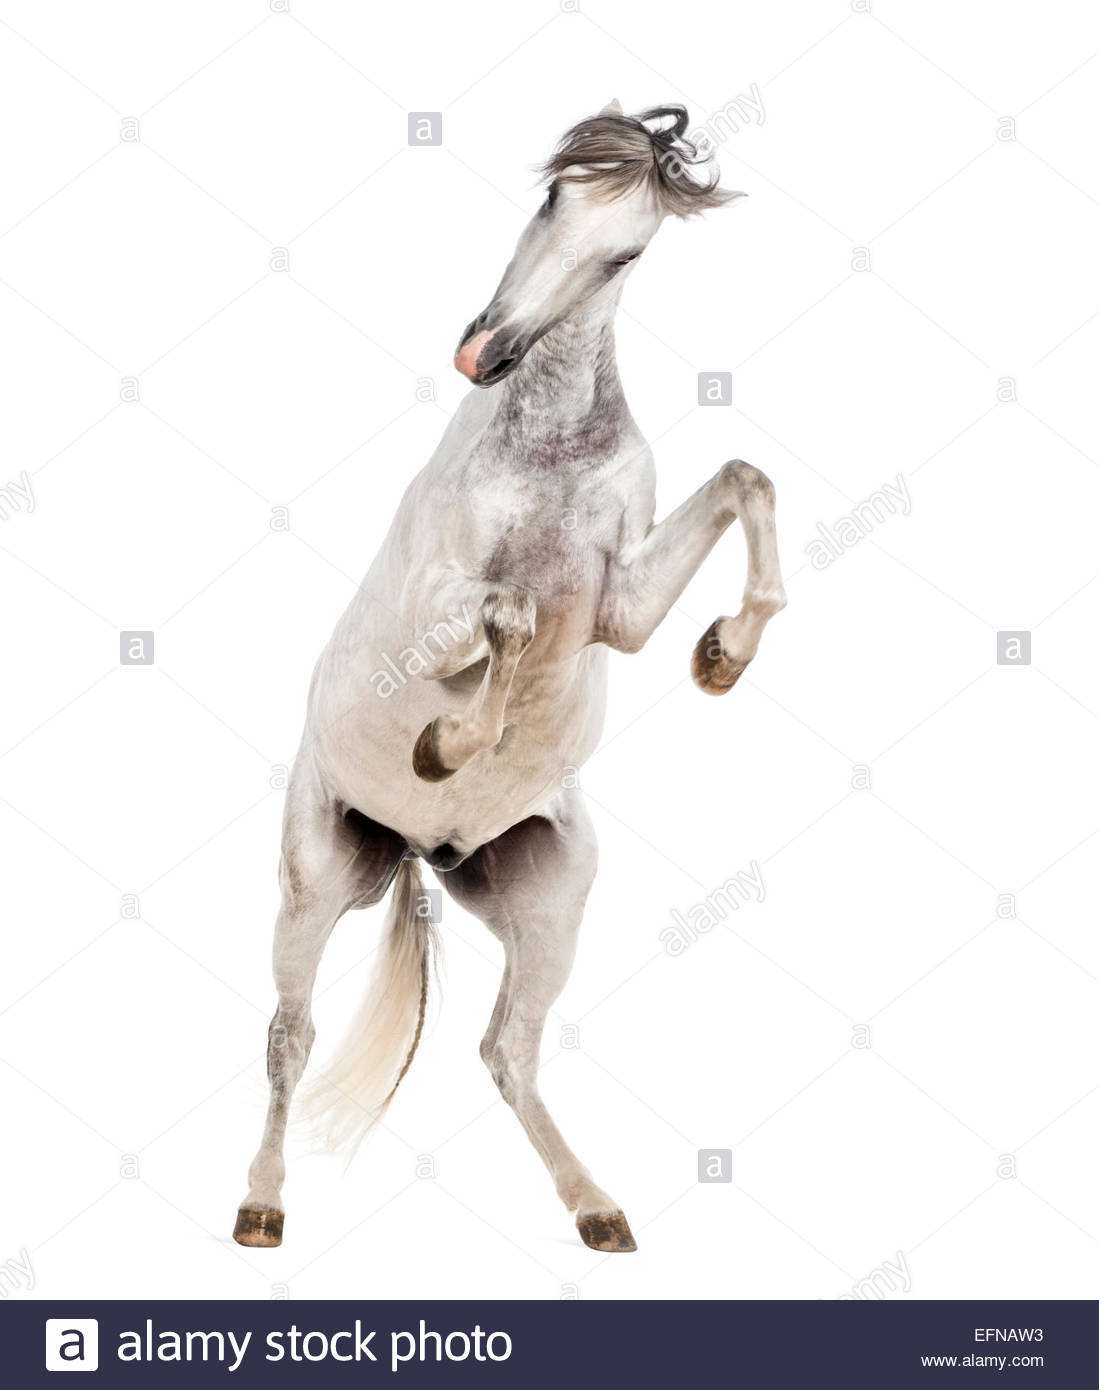 1099x1390 Andalusian Horse Rearing Up Against White Background Stock Photo